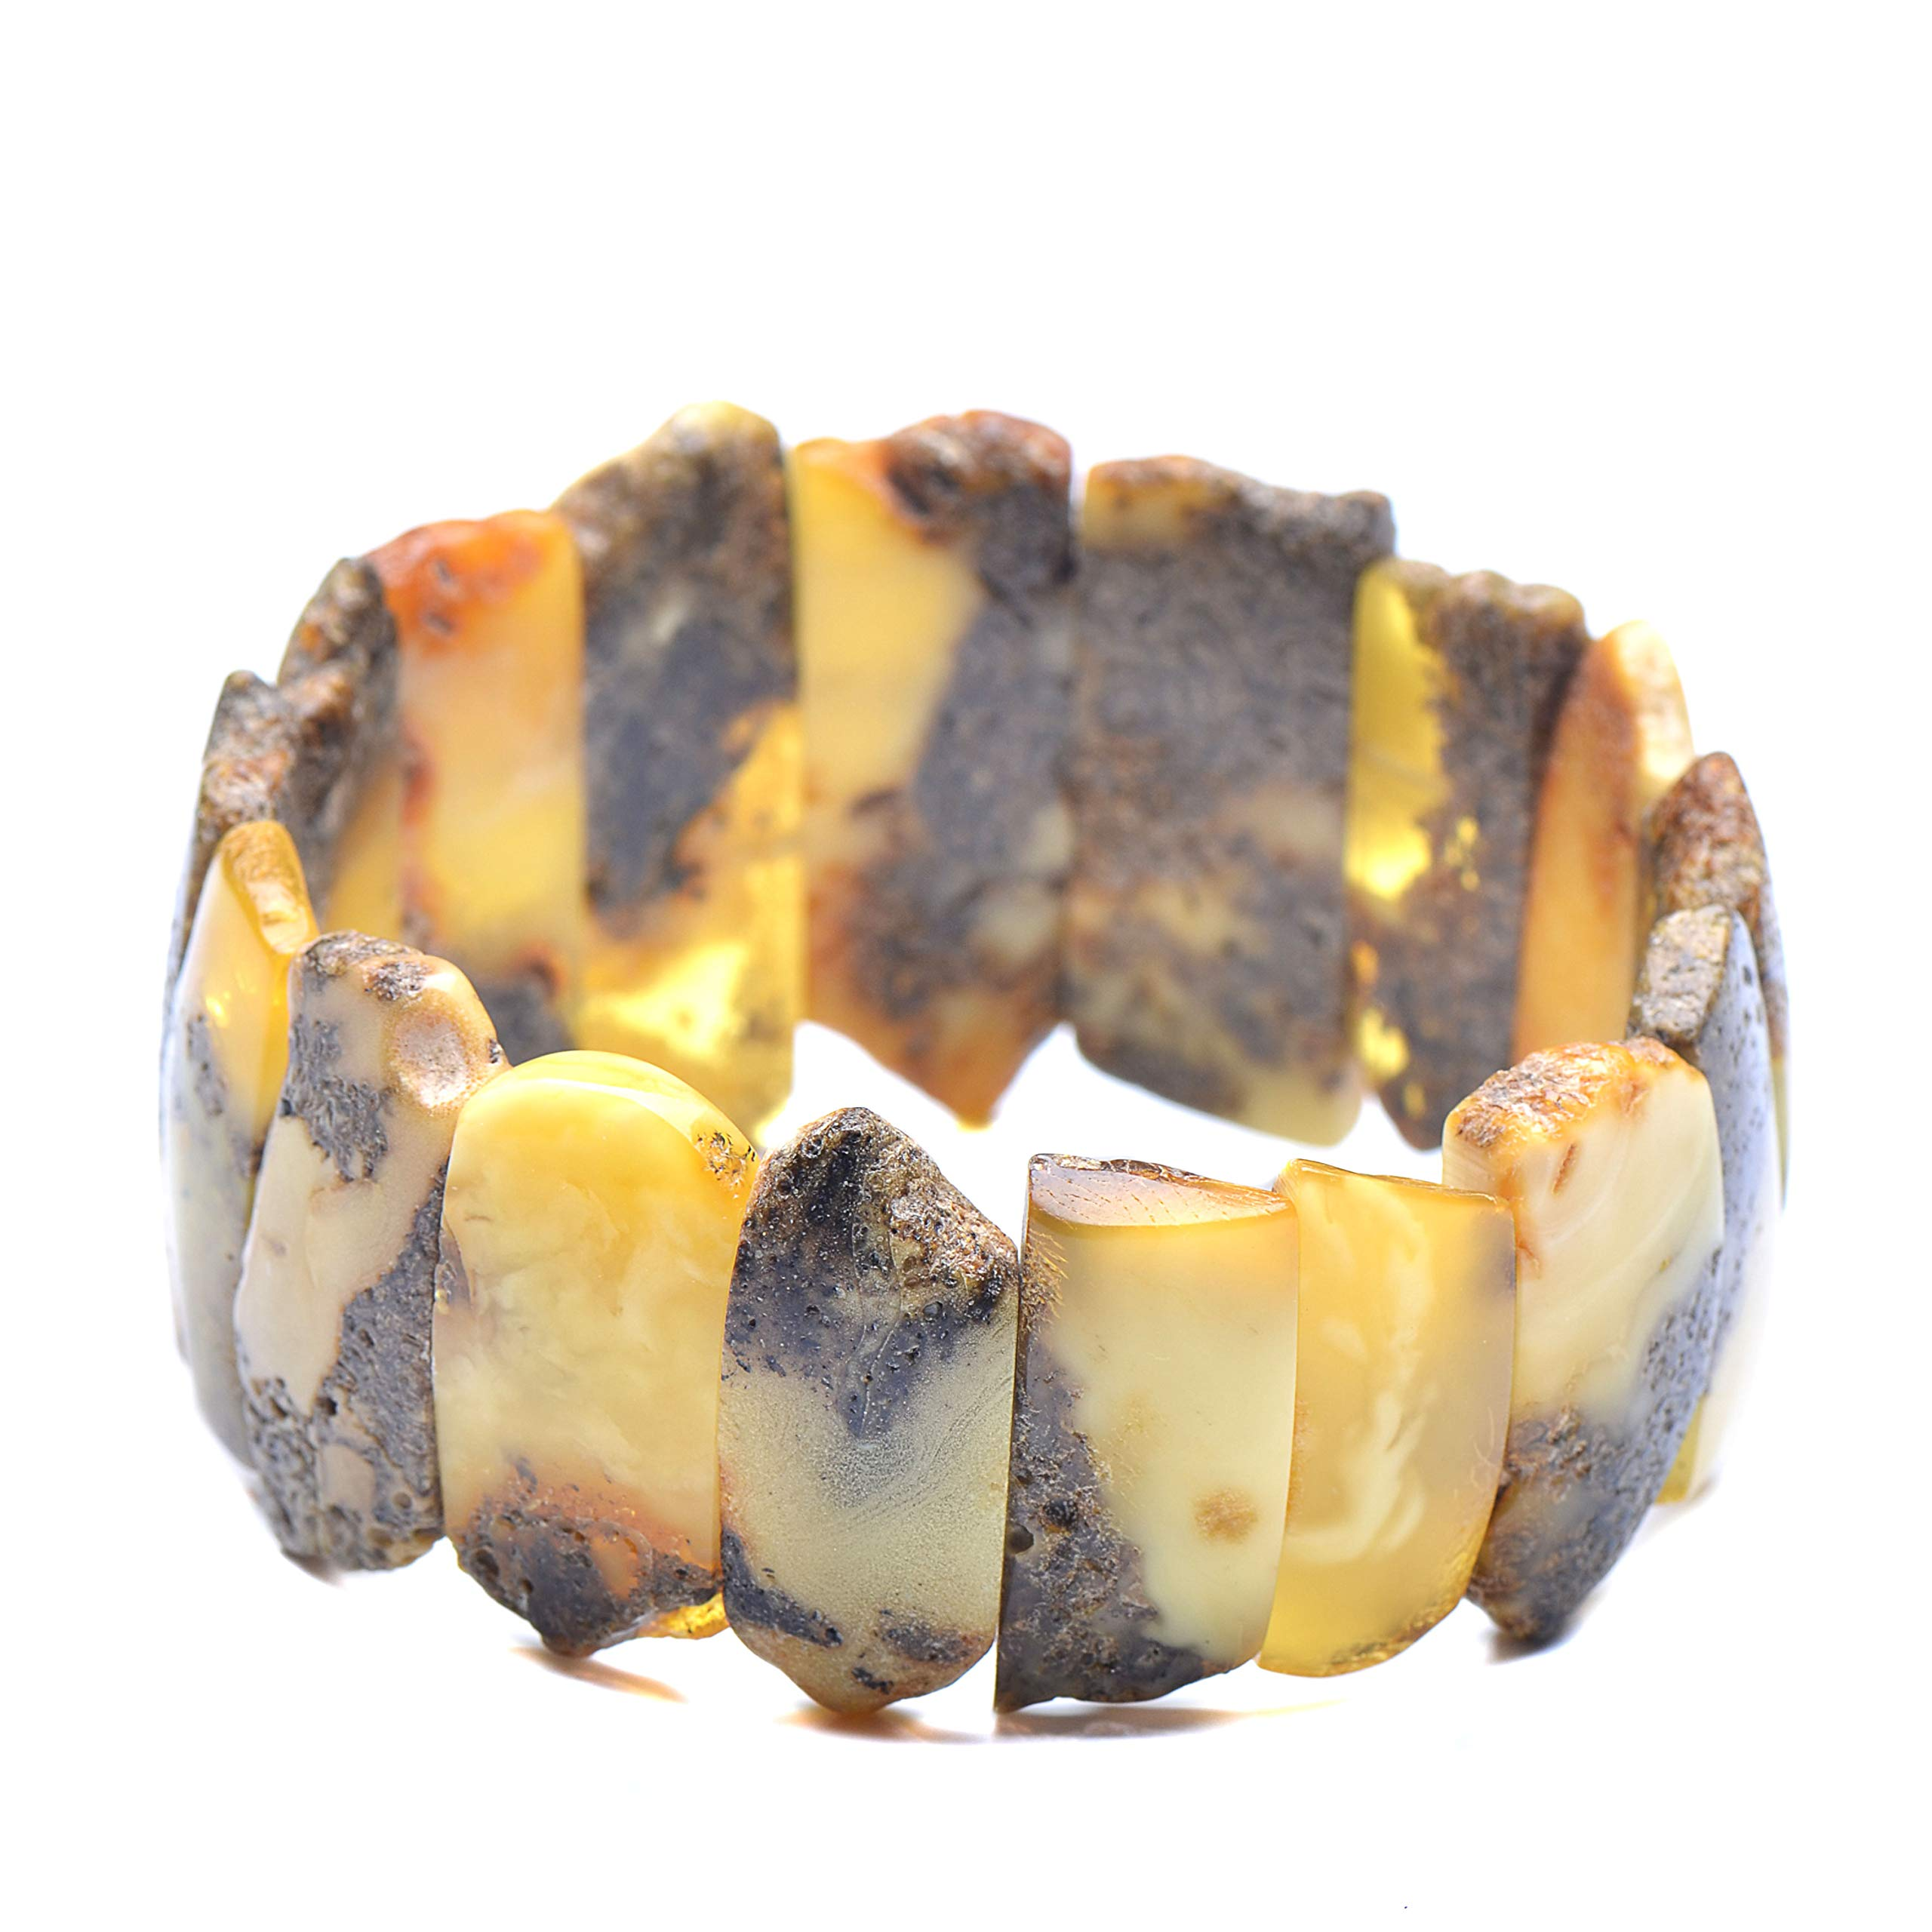 Exclusive Amber Bracelet - Unique Amber Jewelry - Unique Bracelet - Vintage Bracelet - Vintage Amber Bracelet by Genuine Amber (Image #1)